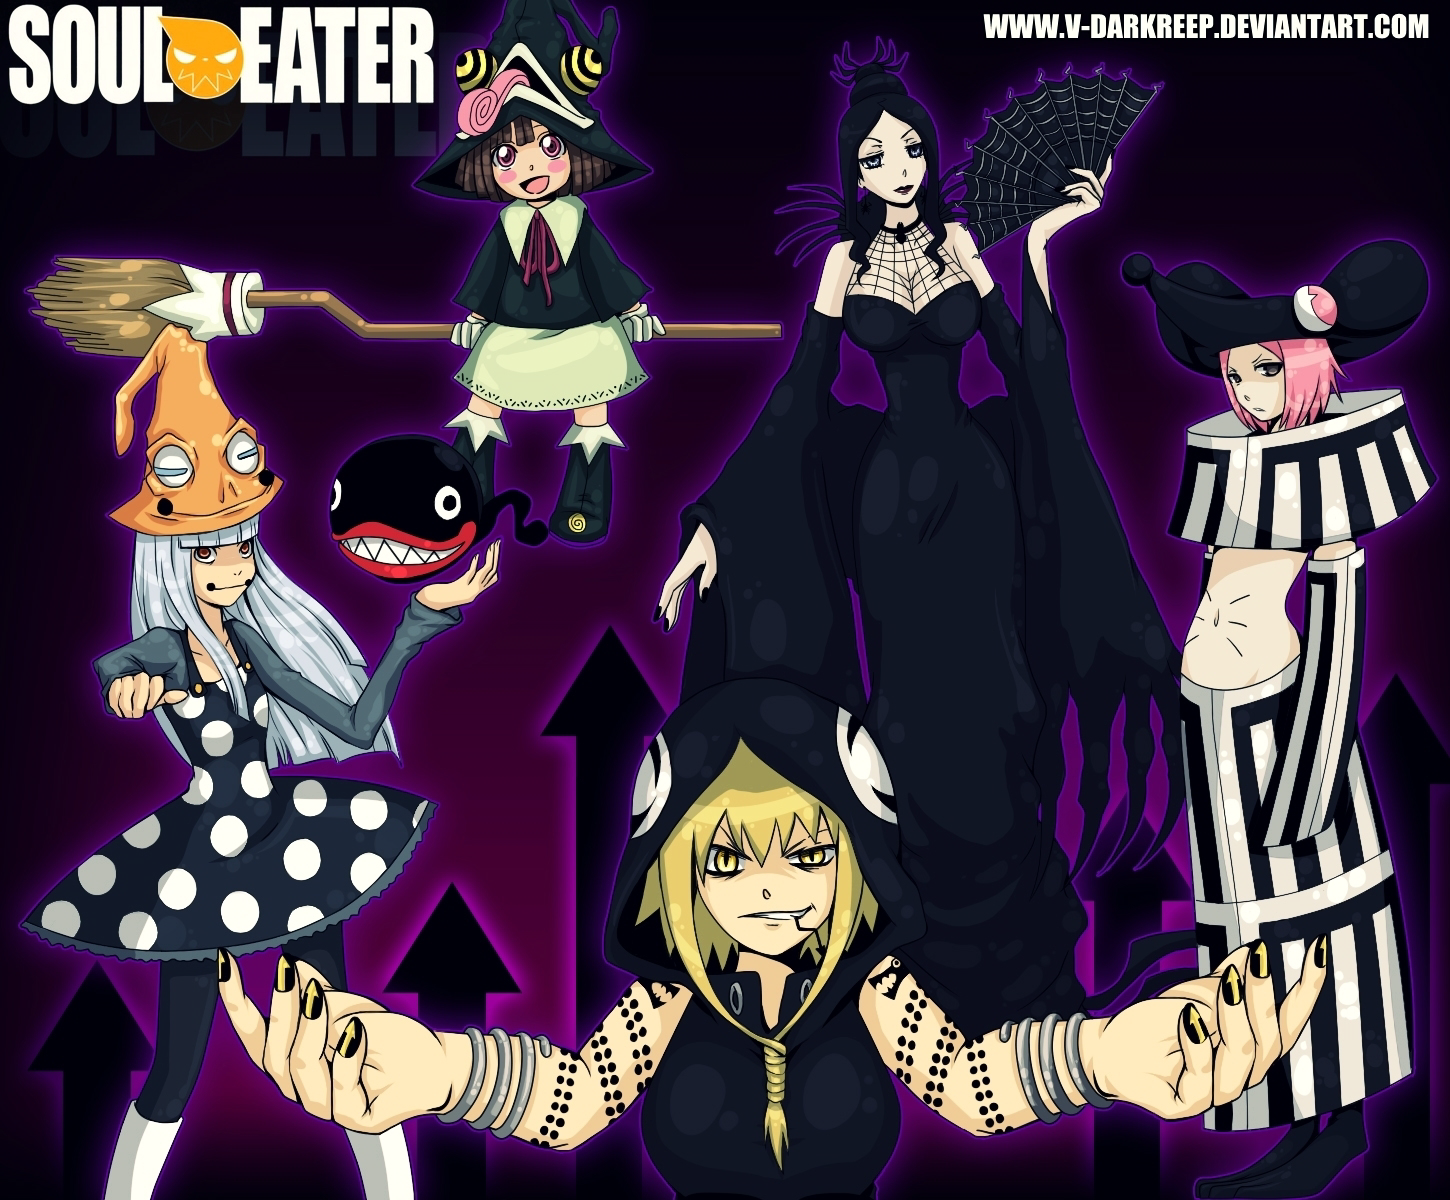 http://orig10.deviantart.net/3e48/f/2011/126/6/2/soul_eater_witches_by_v_darkreep-d3agqkx.png